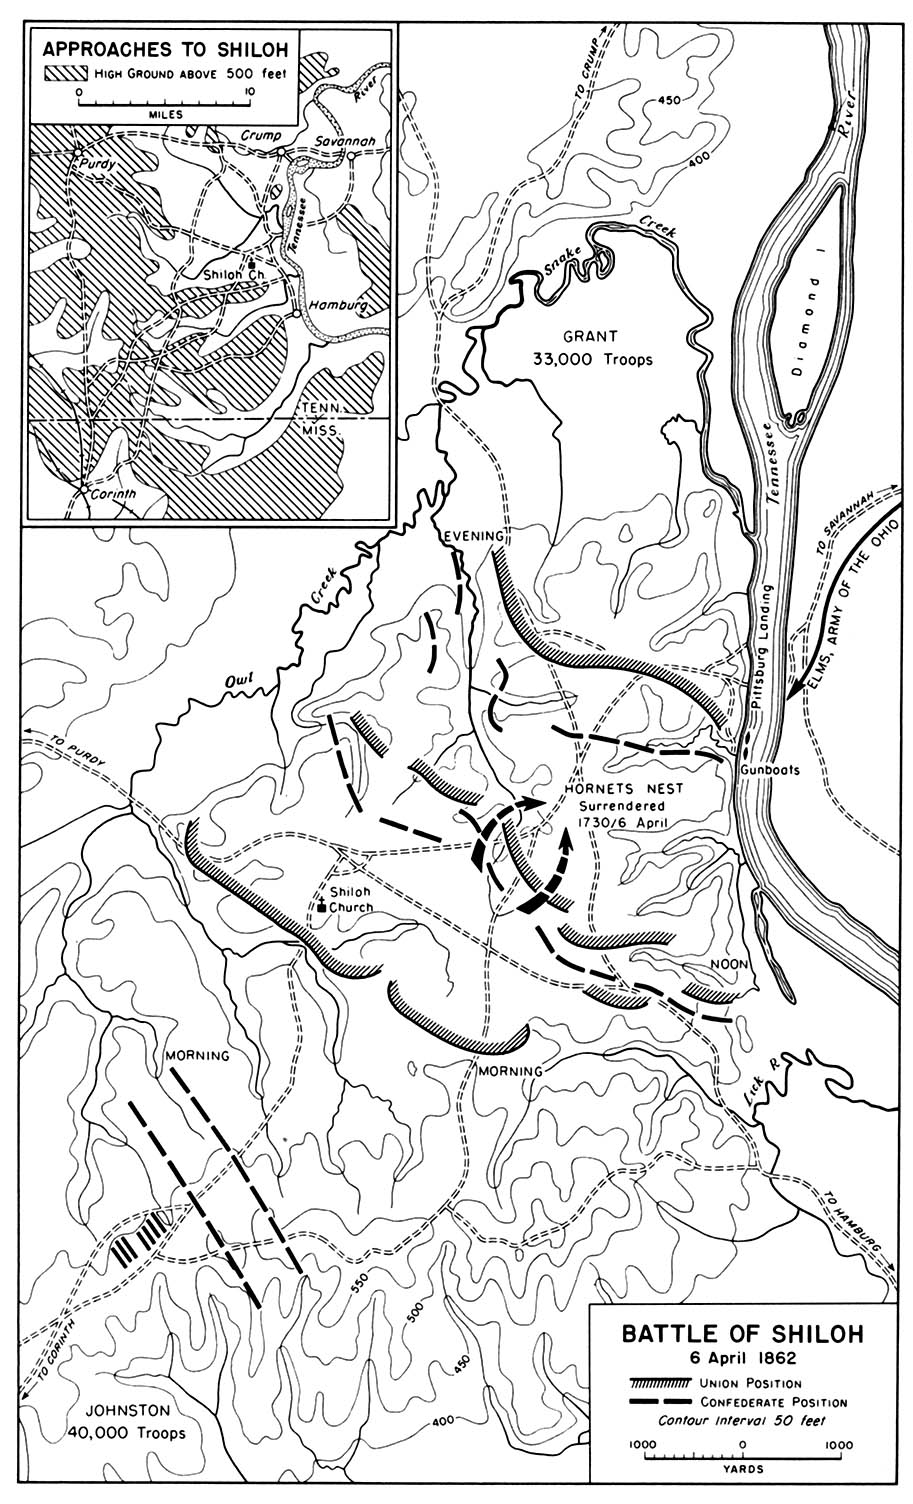 Map of the Battle of Shiloh, American Civil War,  6 April 1862